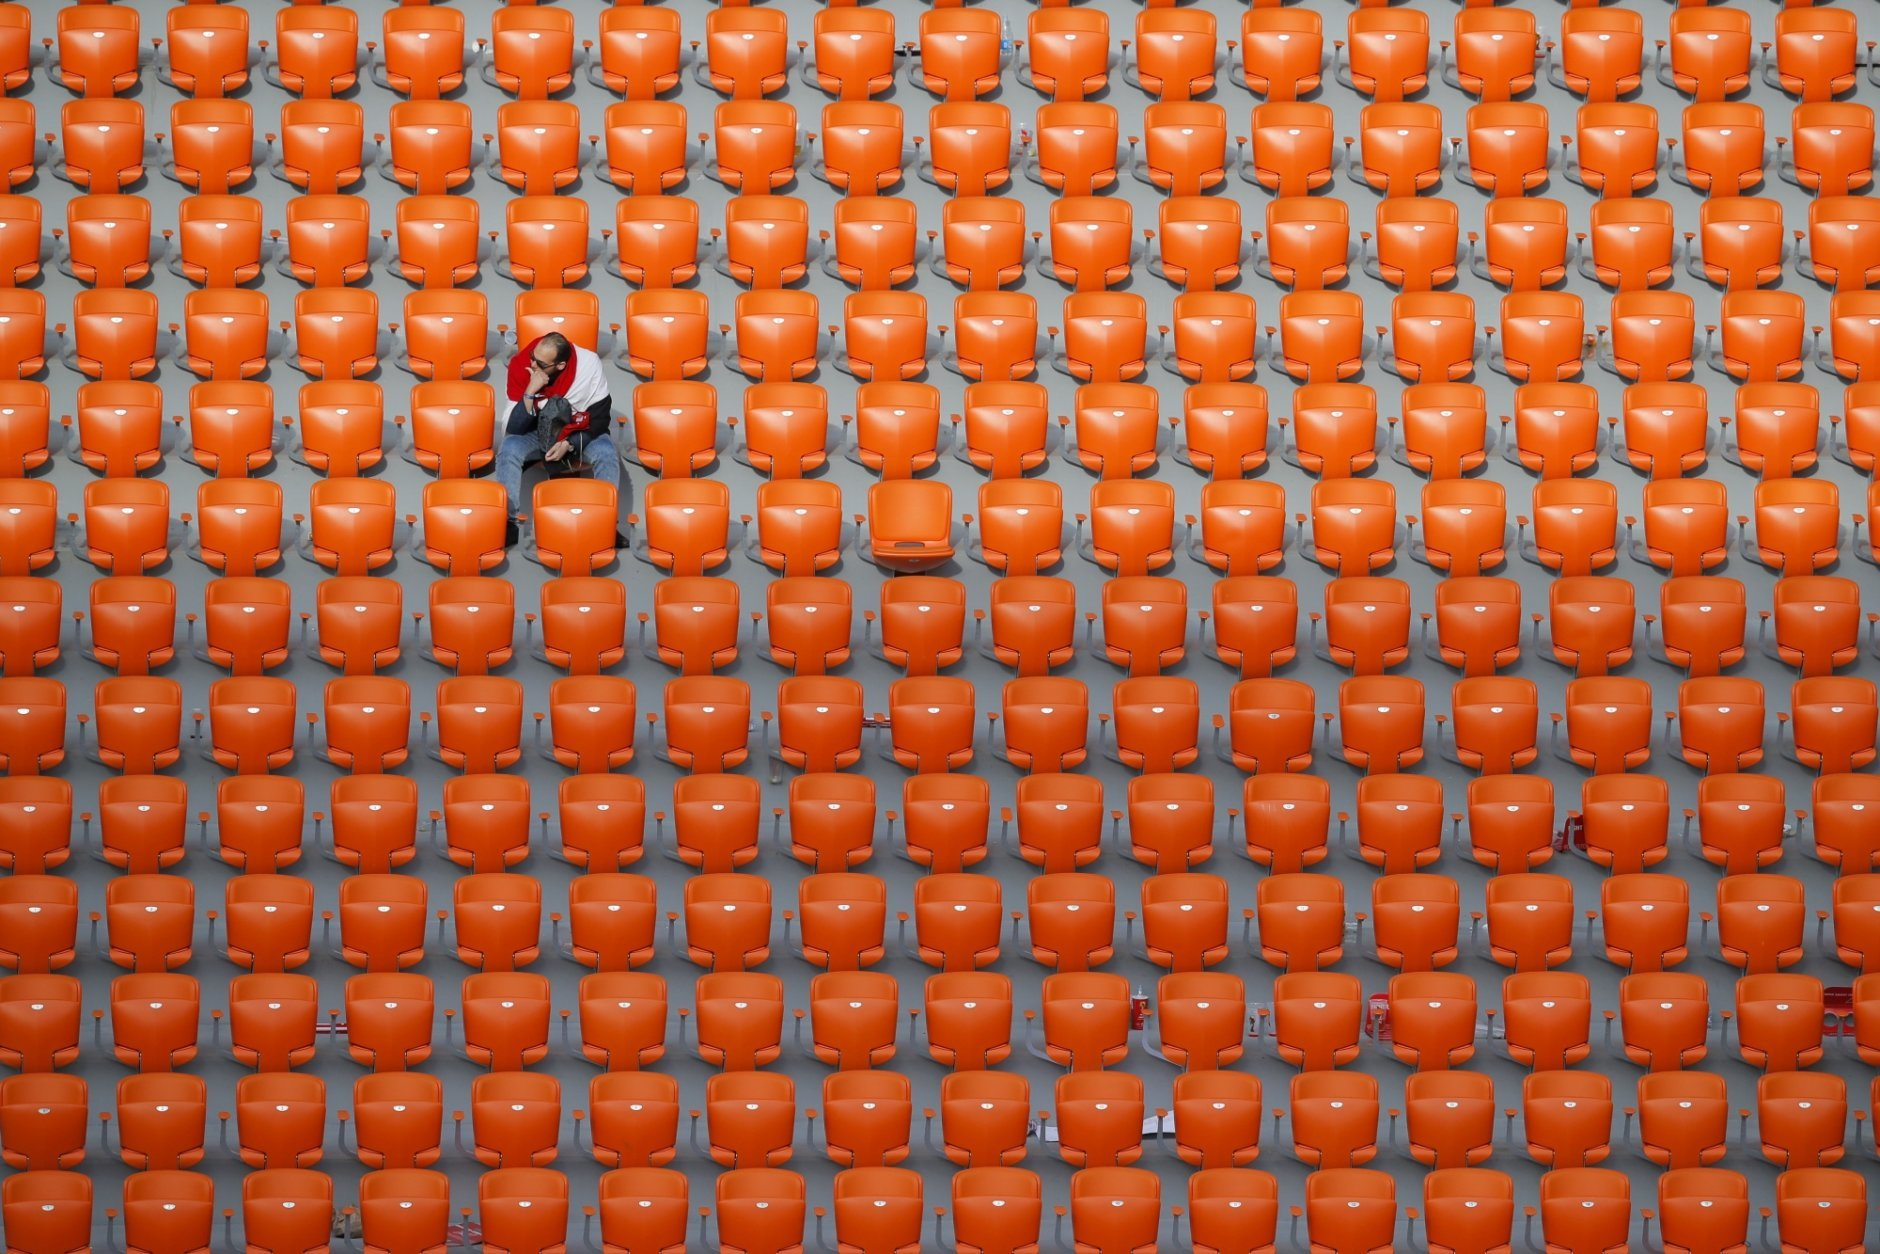 An Egyptian fan seats after the end of the group A match between Egypt and Uruguay at the 2018 soccer World Cup in the Yekaterinburg Arena in Yekaterinburg, Russia, Friday, June 15, 2018. (AP Photo/Vadim Ghirda)